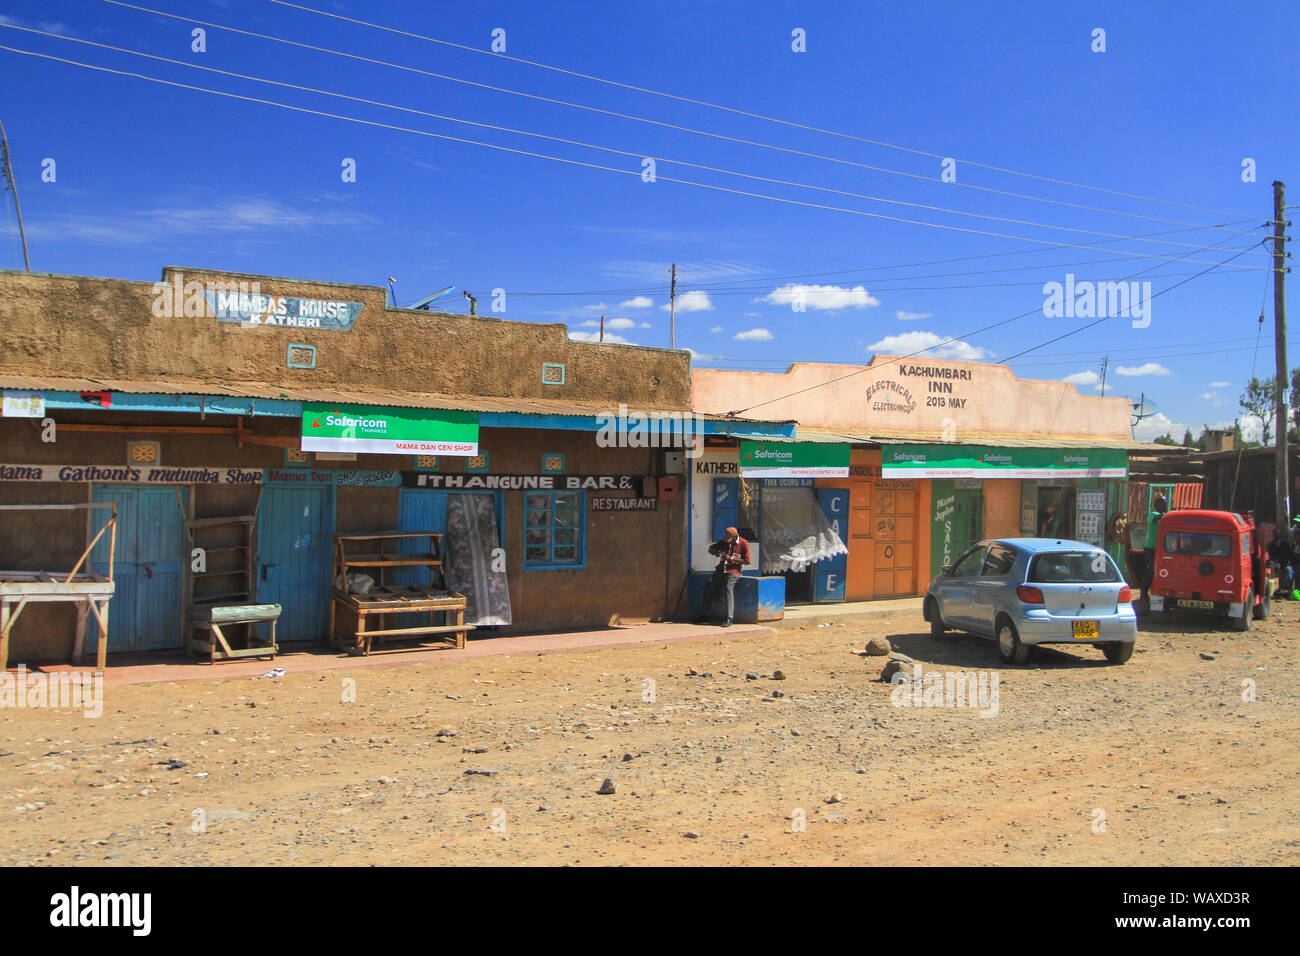 Village street, Kenya, East Africa. Local people outside small shops under blue skies. Authentic Africa, travel by Road Stock Photo